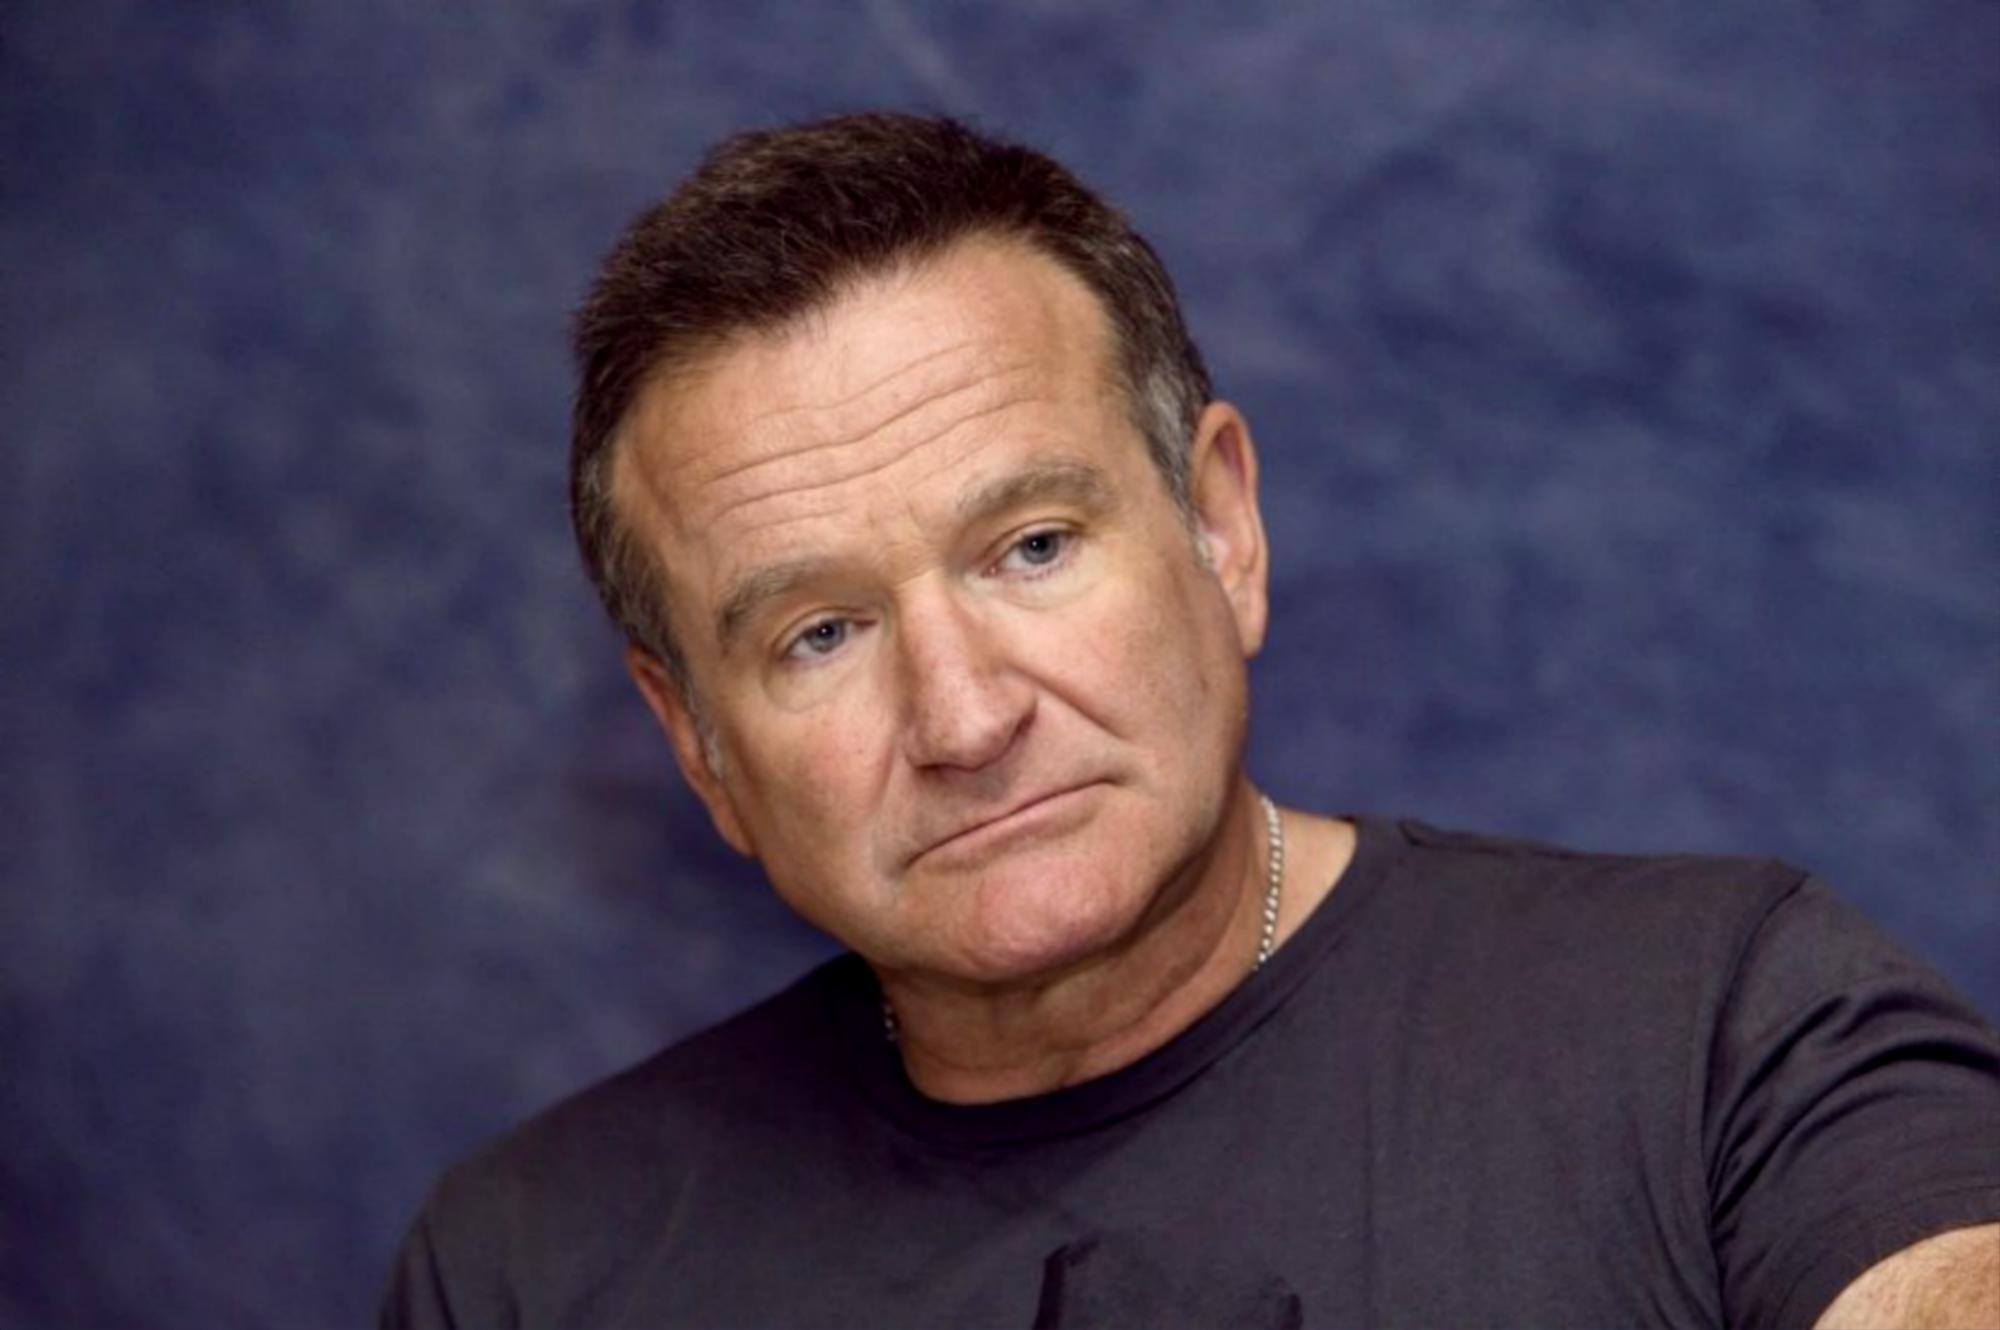 Robin Williams Full HD Wallpaper And Background Image